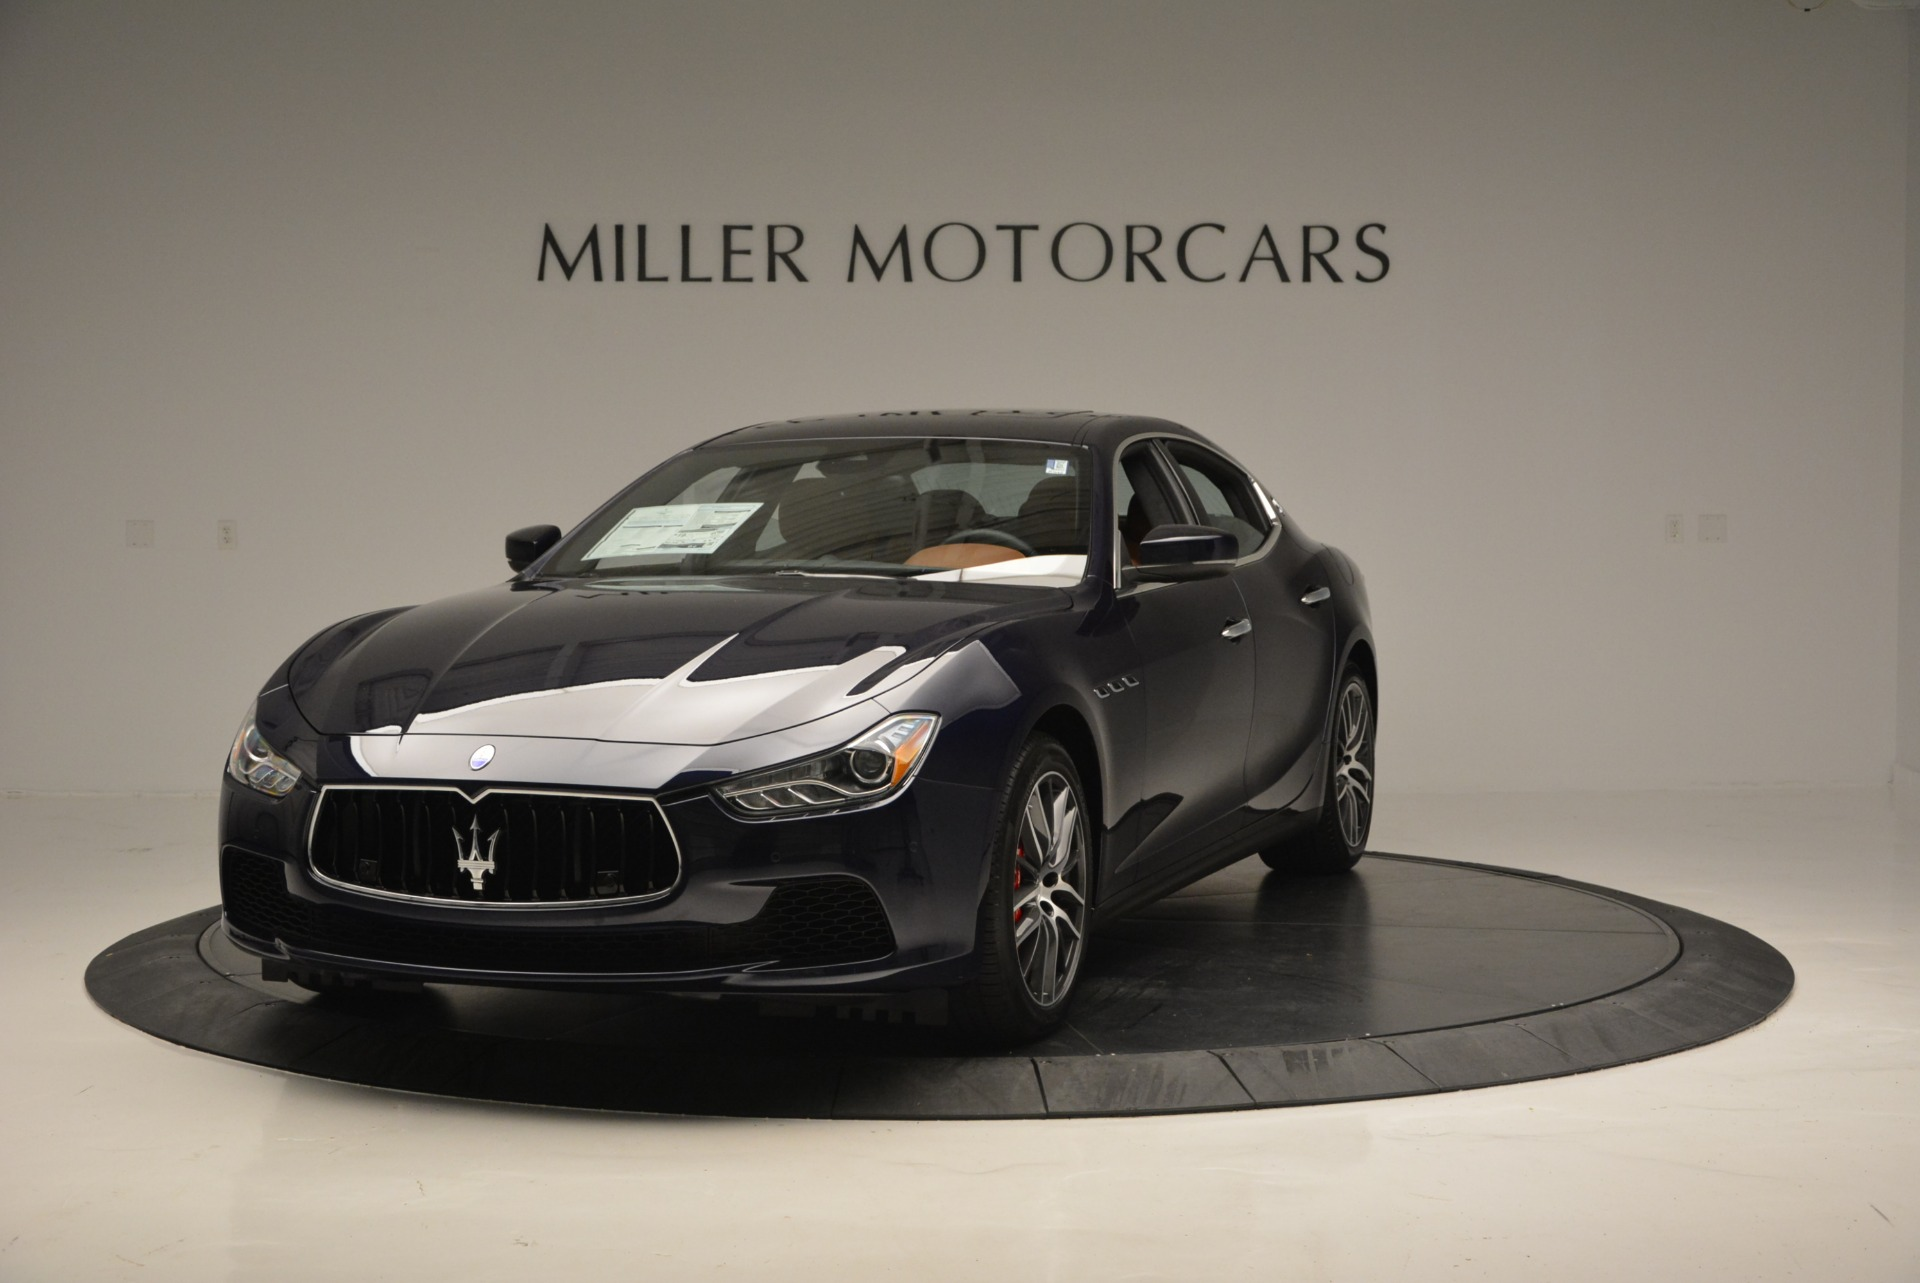 New 2017 Maserati Ghibli S Q4 For Sale In Greenwich, CT 686_main